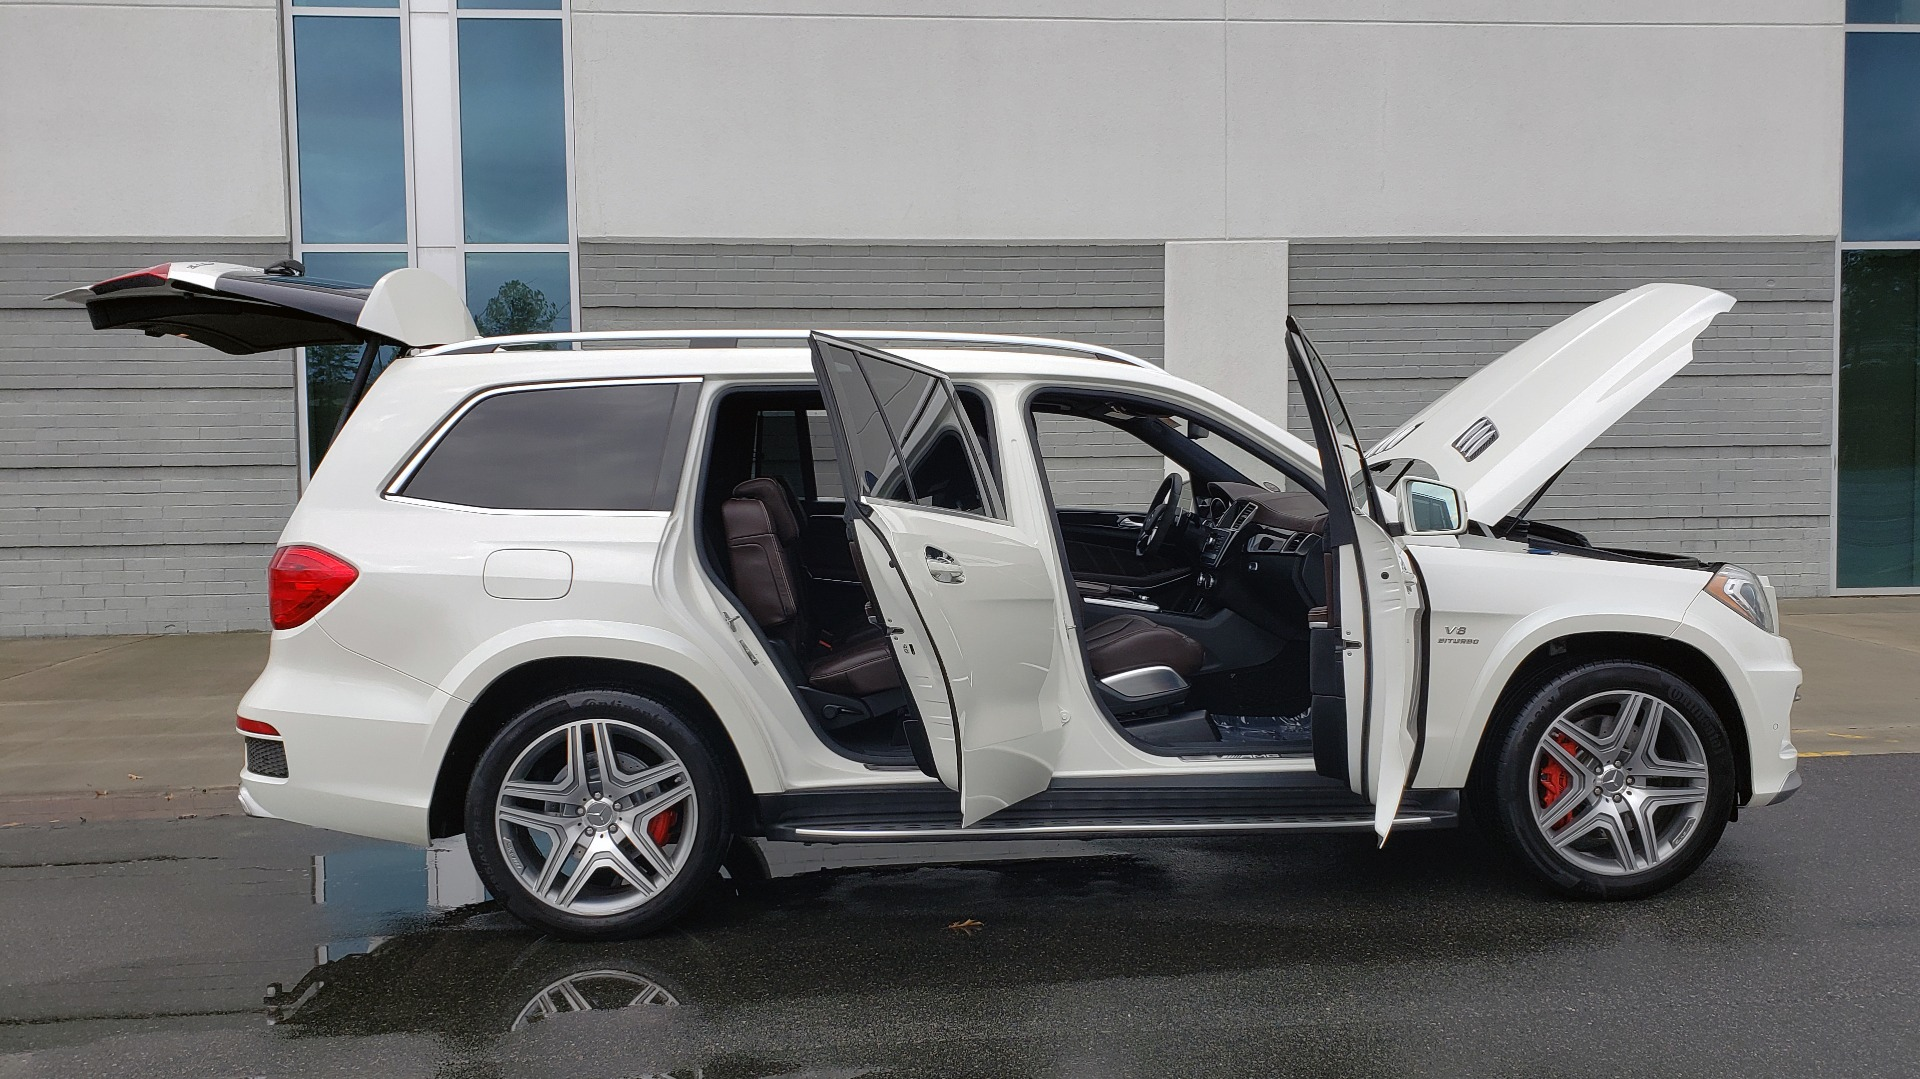 Used 2014 Mercedes-Benz GL-CLASS GL 63 AMG 4MATIC / NIGHT VIEW ASSIST PLUS / BANG & OLUFSEN SND for sale Sold at Formula Imports in Charlotte NC 28227 11